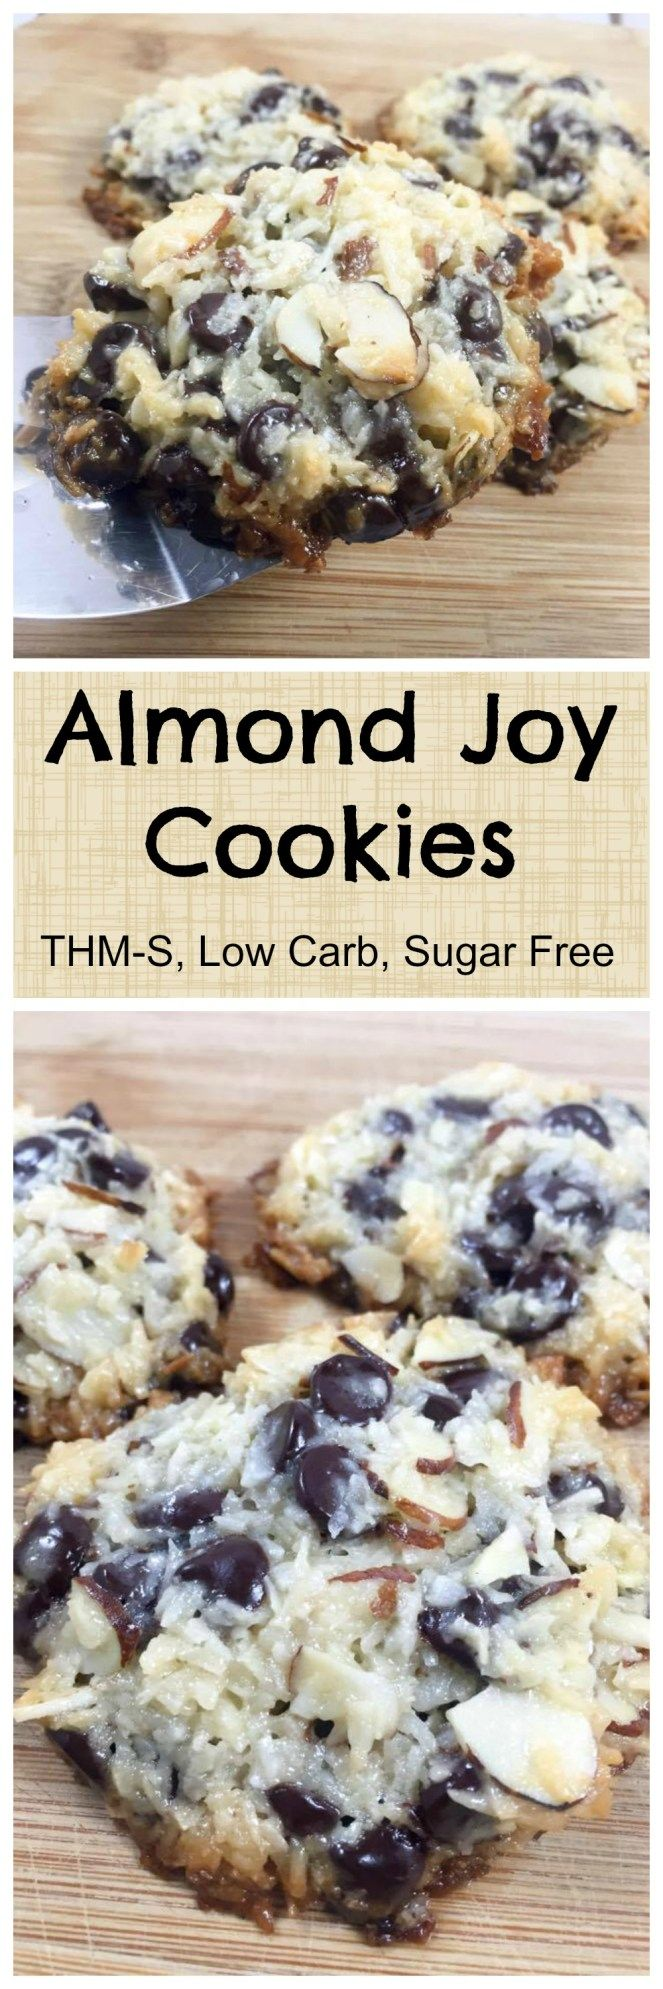 Almond Joy Cookies {Low Carb, Sugar Free, THM-S} - My Montana Kitchen